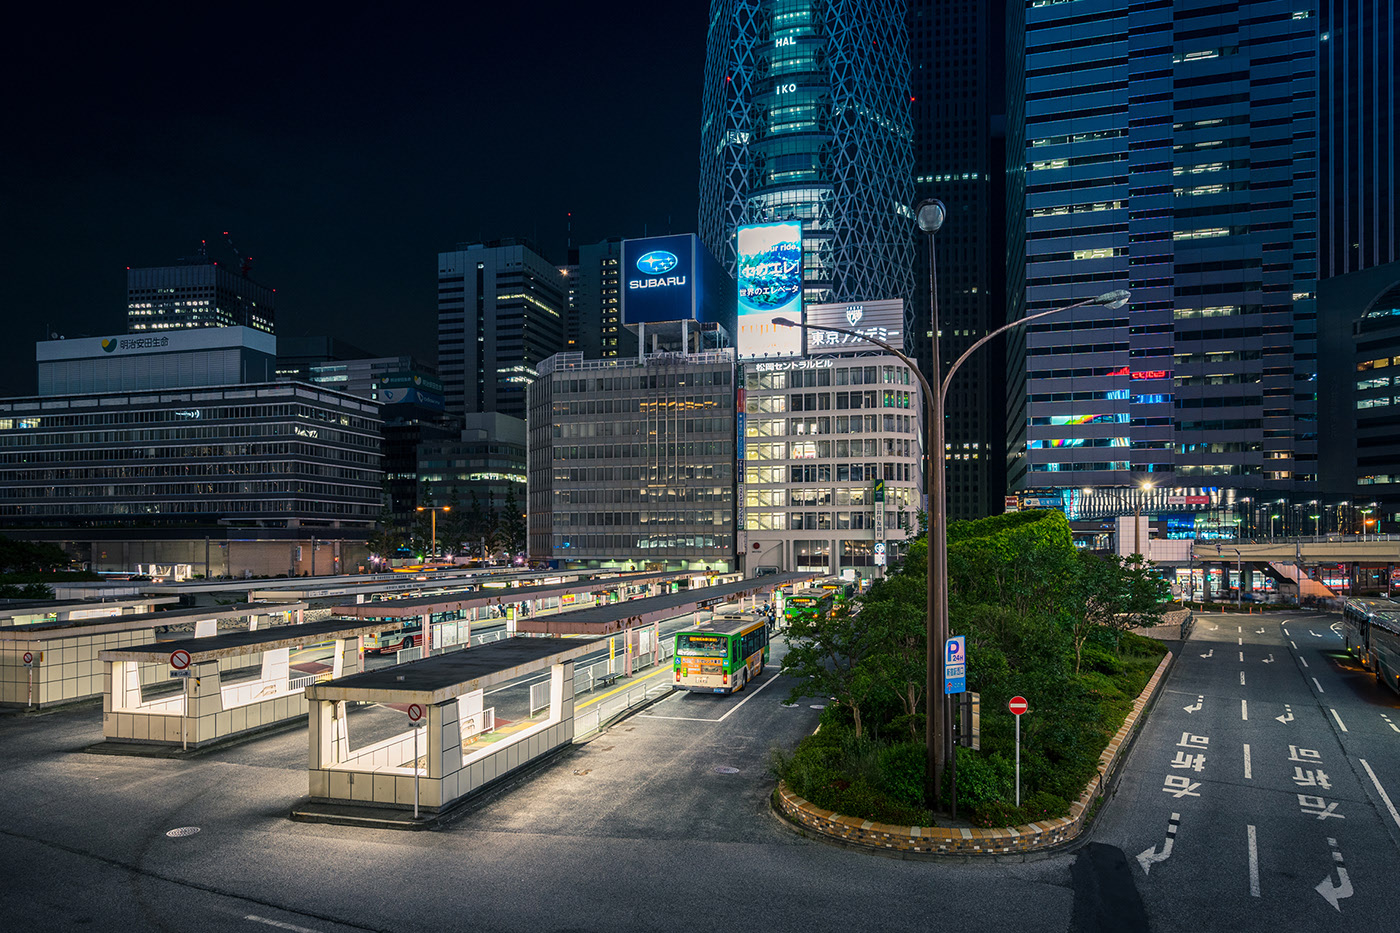 night photography city bus stand